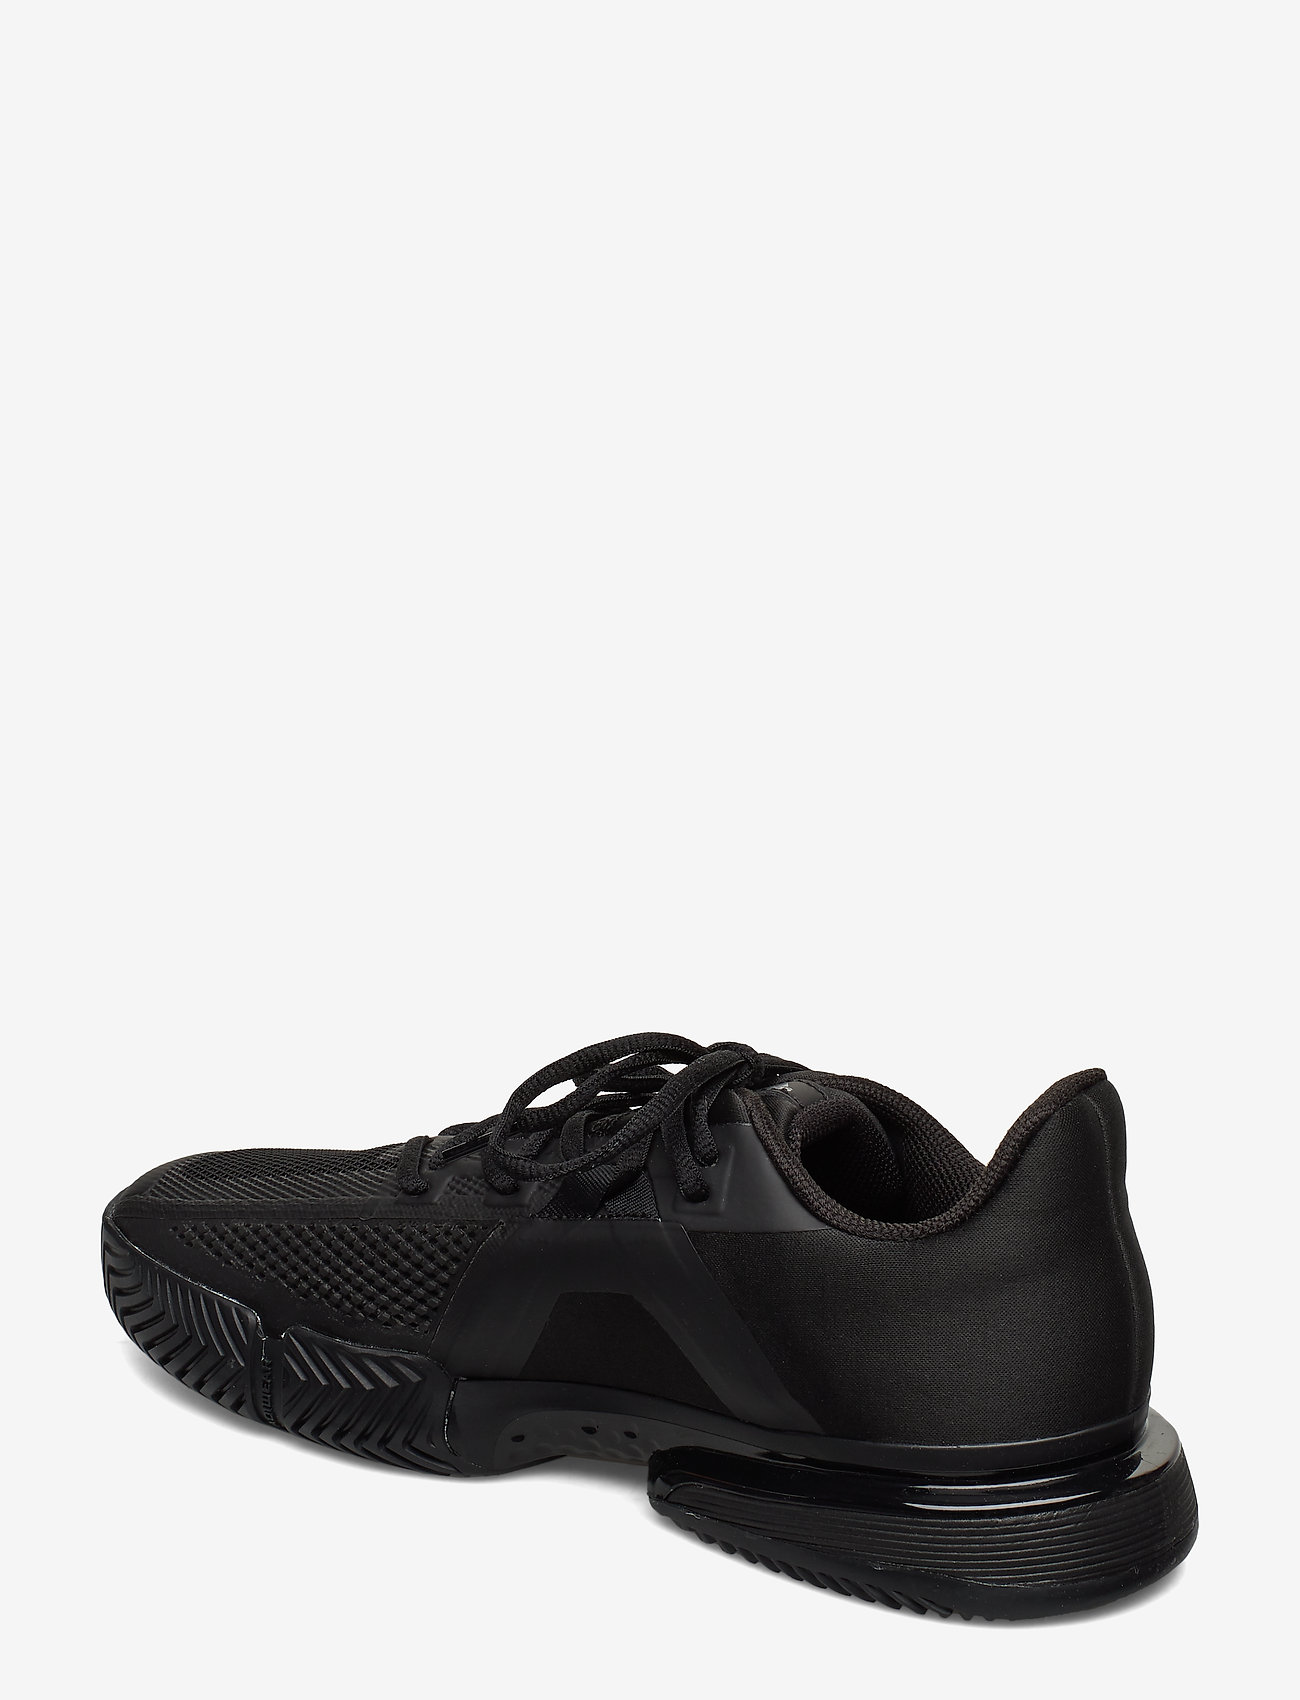 Solematch Bounce M (Black) - adidas Tennis